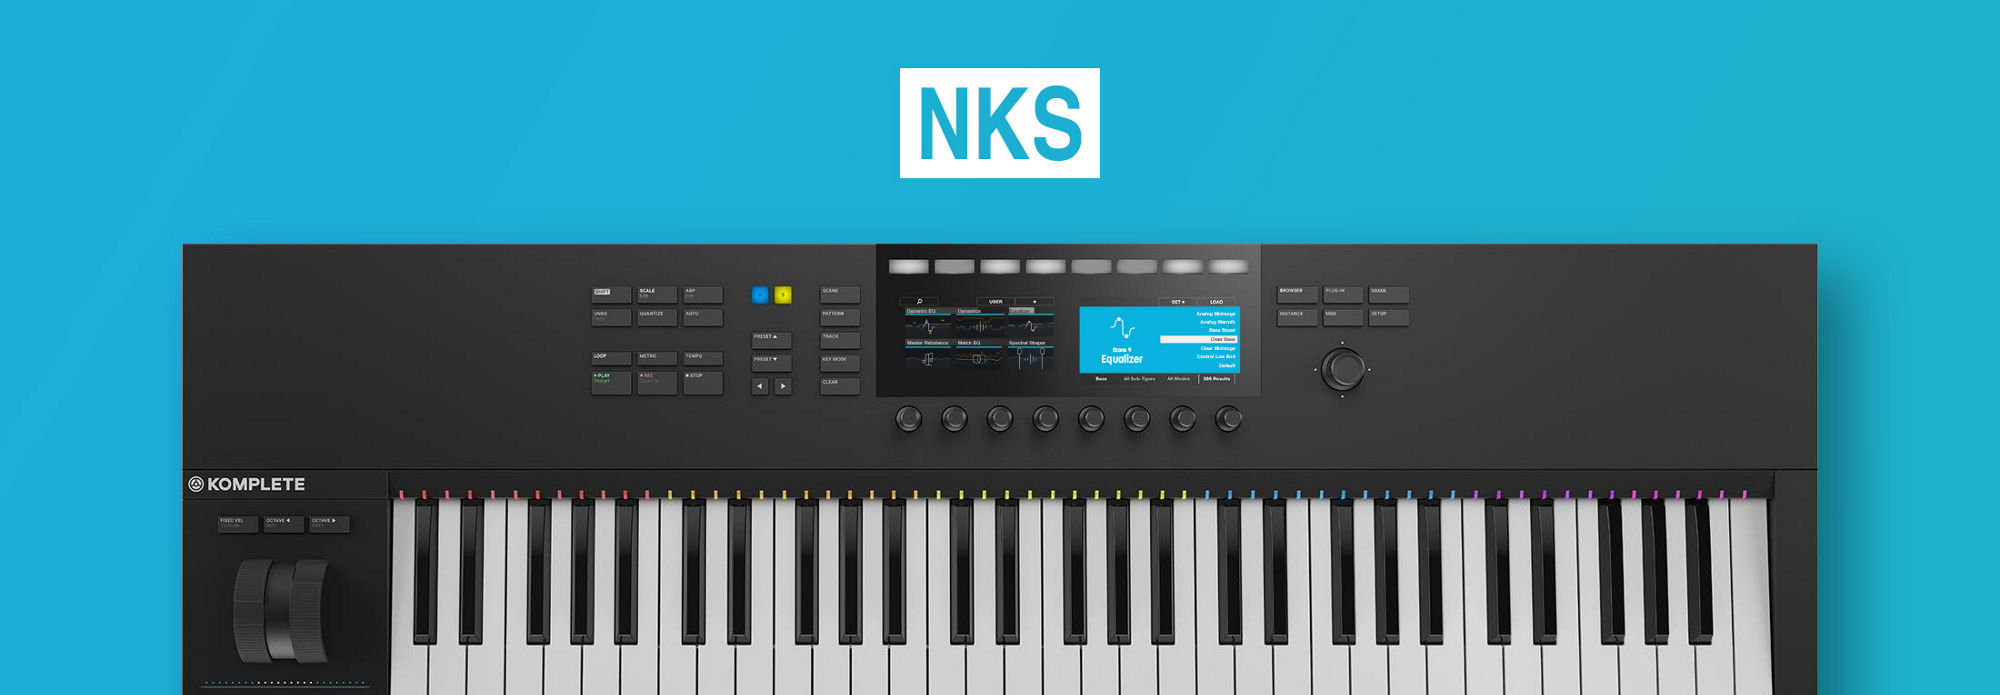 Ozone 9 introduces NKS support.